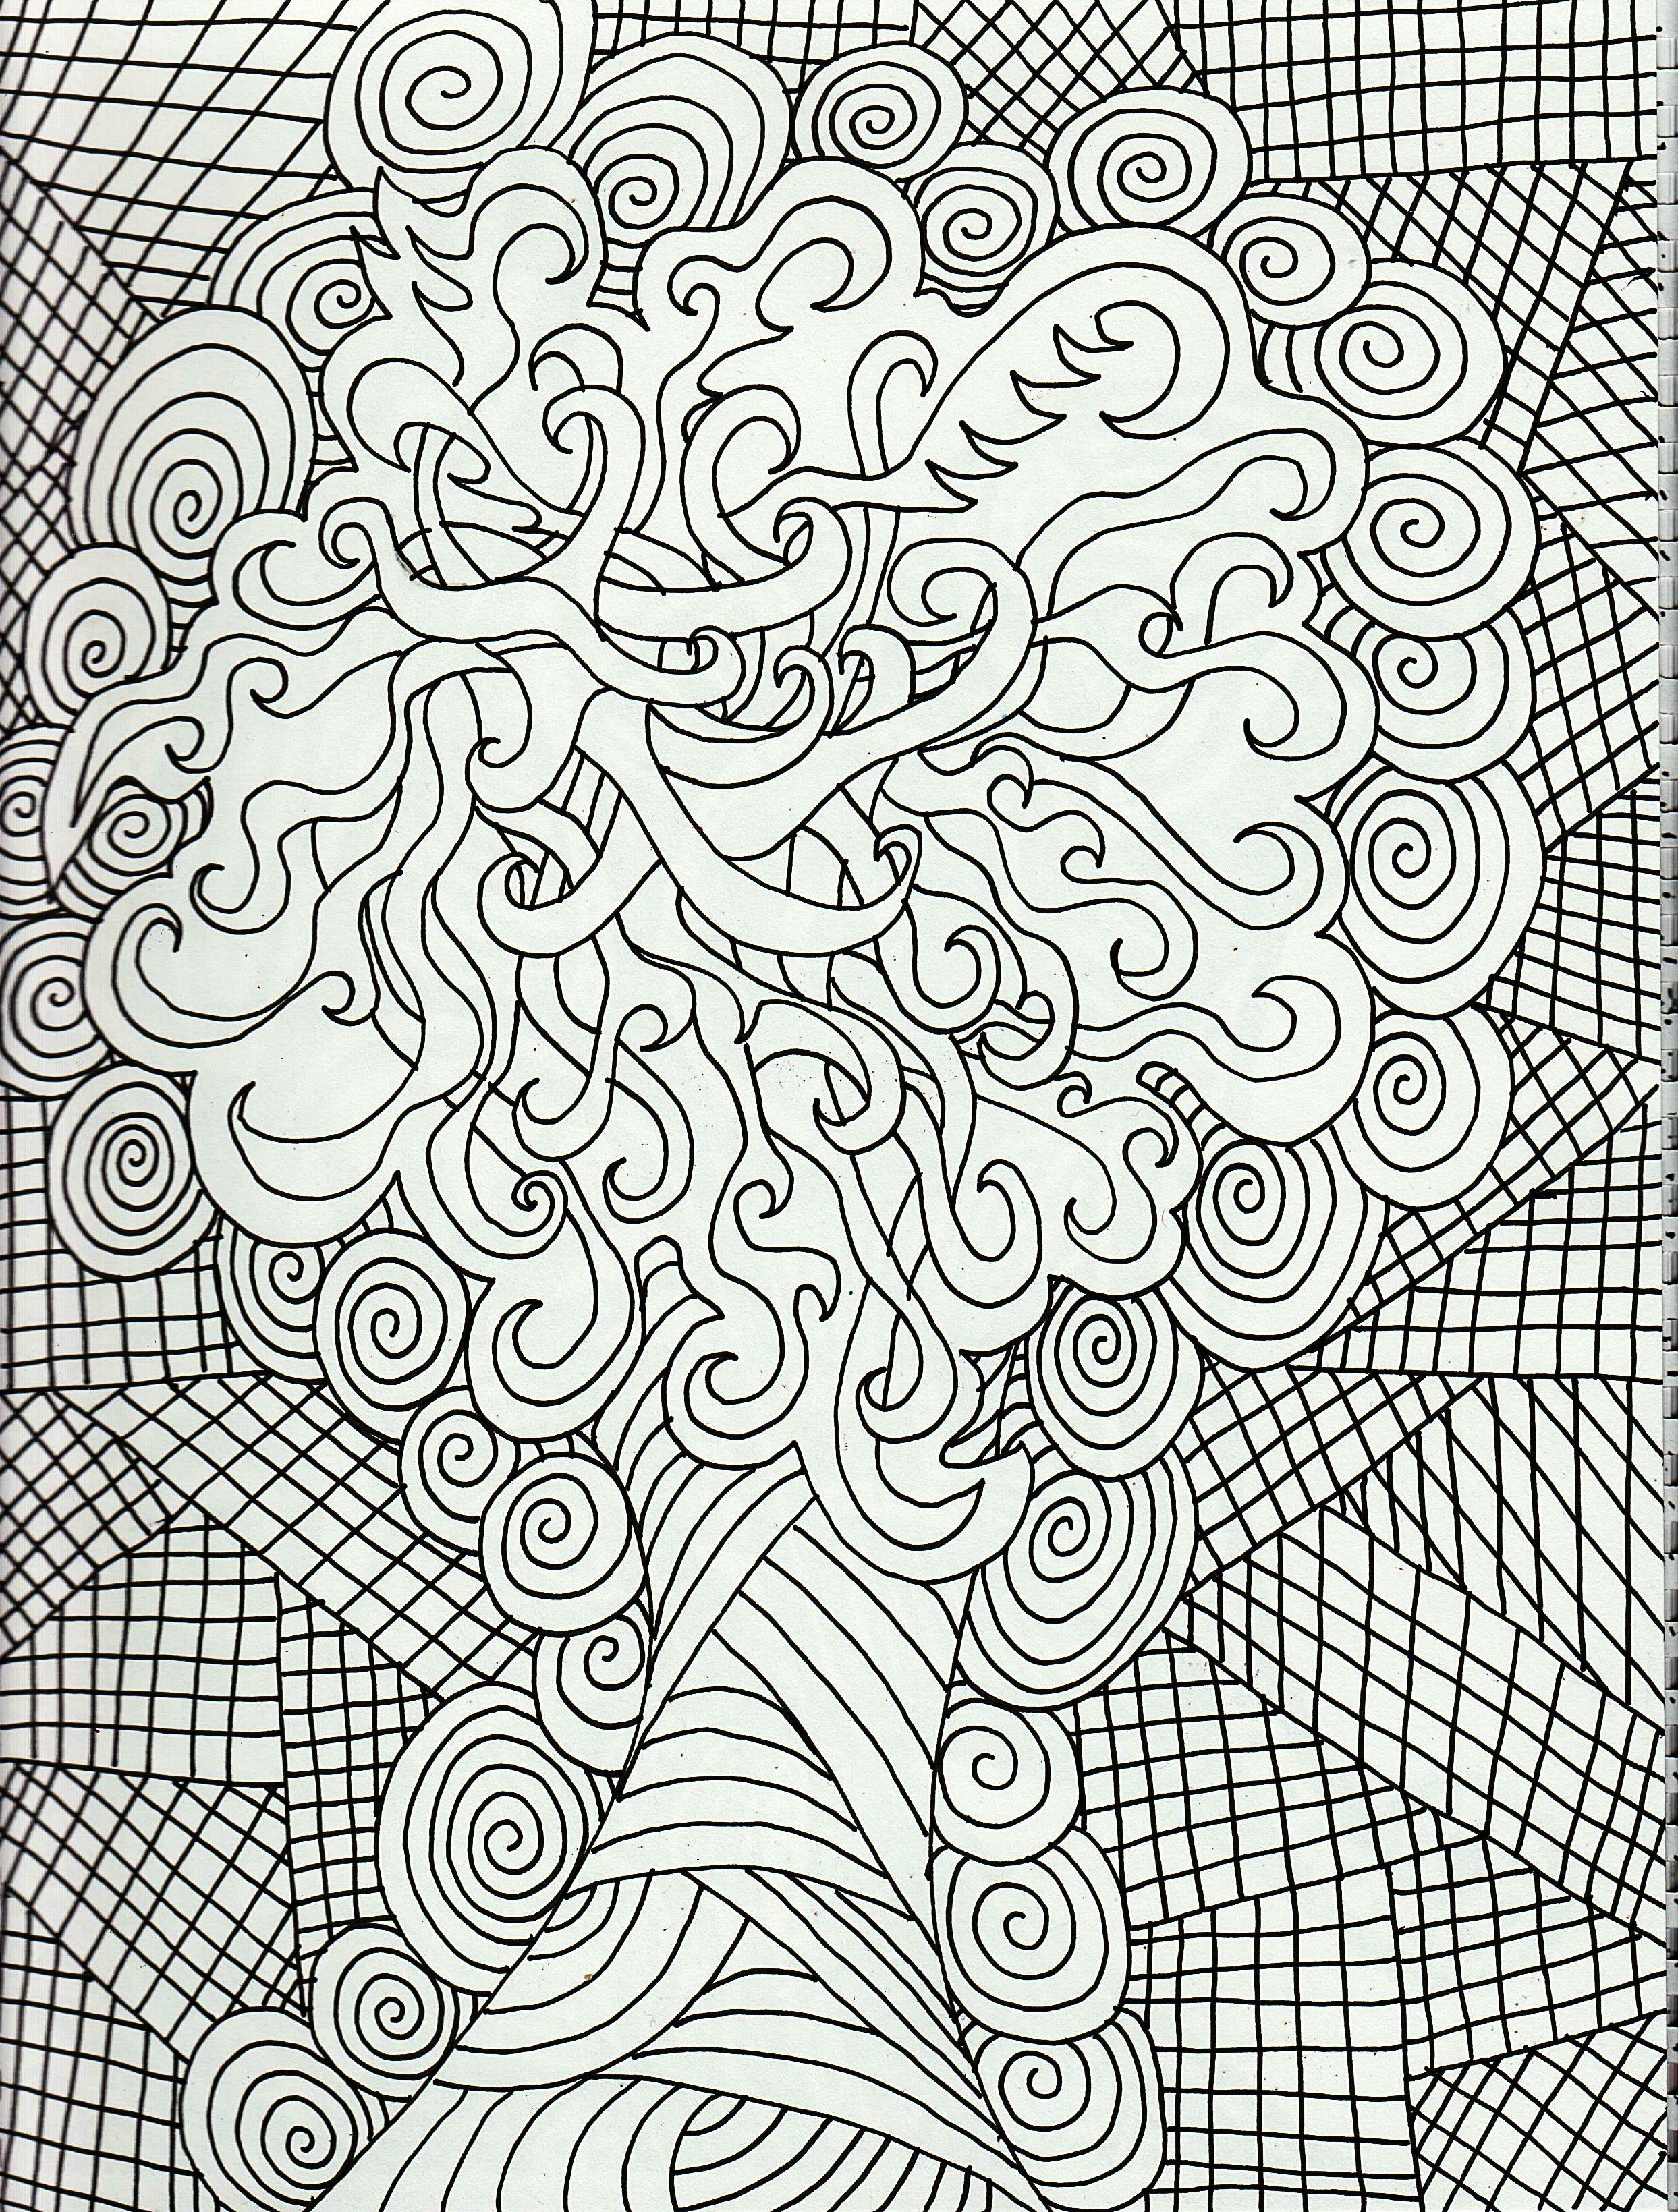 Coloring Pages For Adults - Free Large Images | Adult